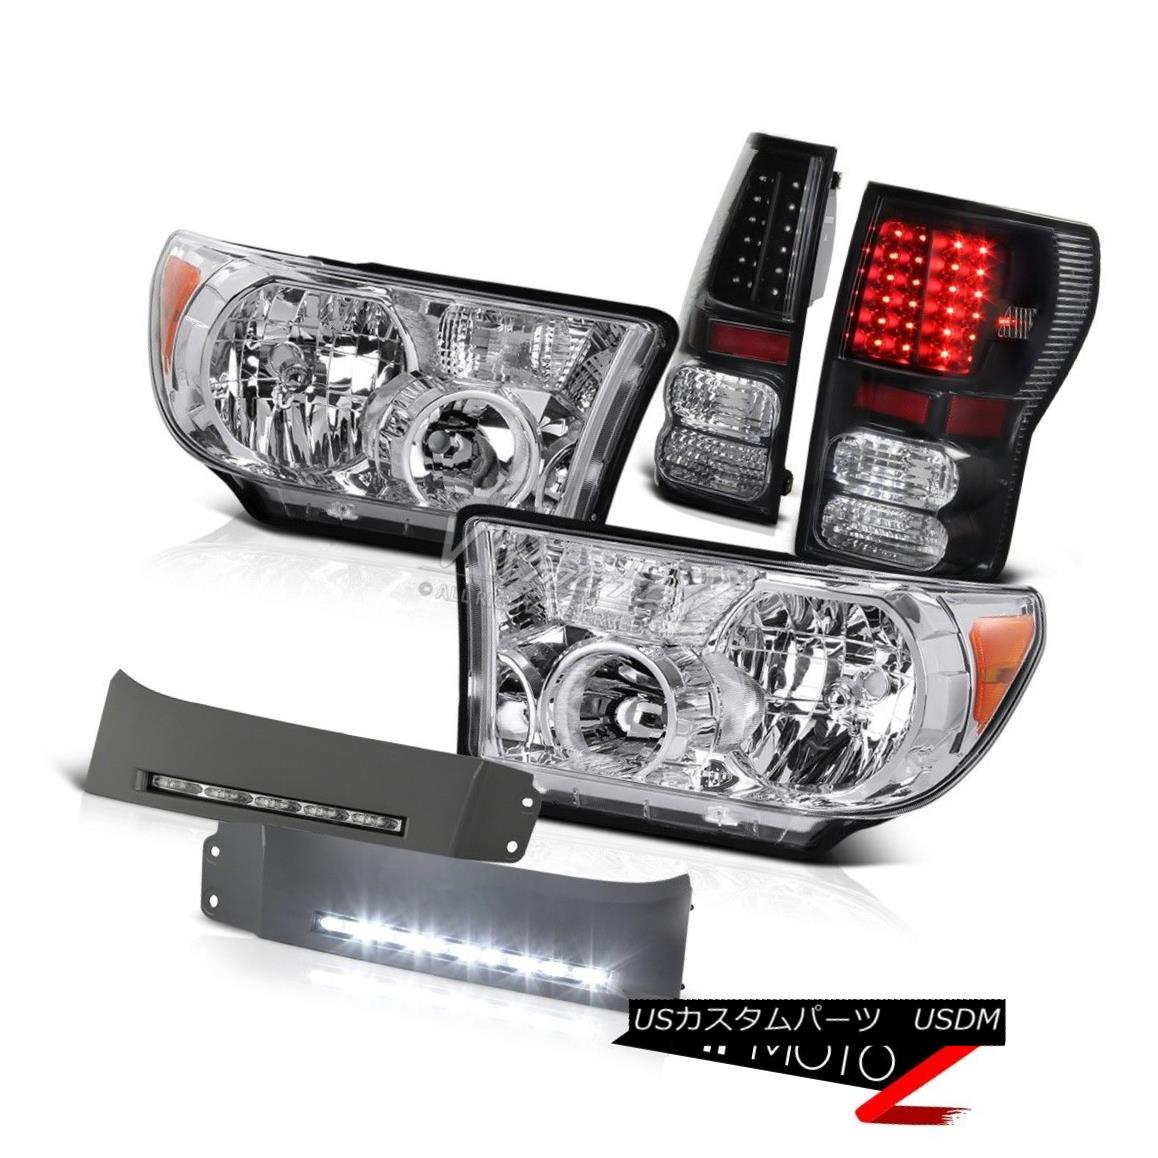 ヘッドライト 07 08 09 10 11 12 13 Tundra SR5 LIMITED PLATINUM Black LED Brake Headlights Lamp 07 08 09 10 11 12 13 Tundra SR5 LIMITED PLATINUMブラックLEDブレーキヘッドランプ